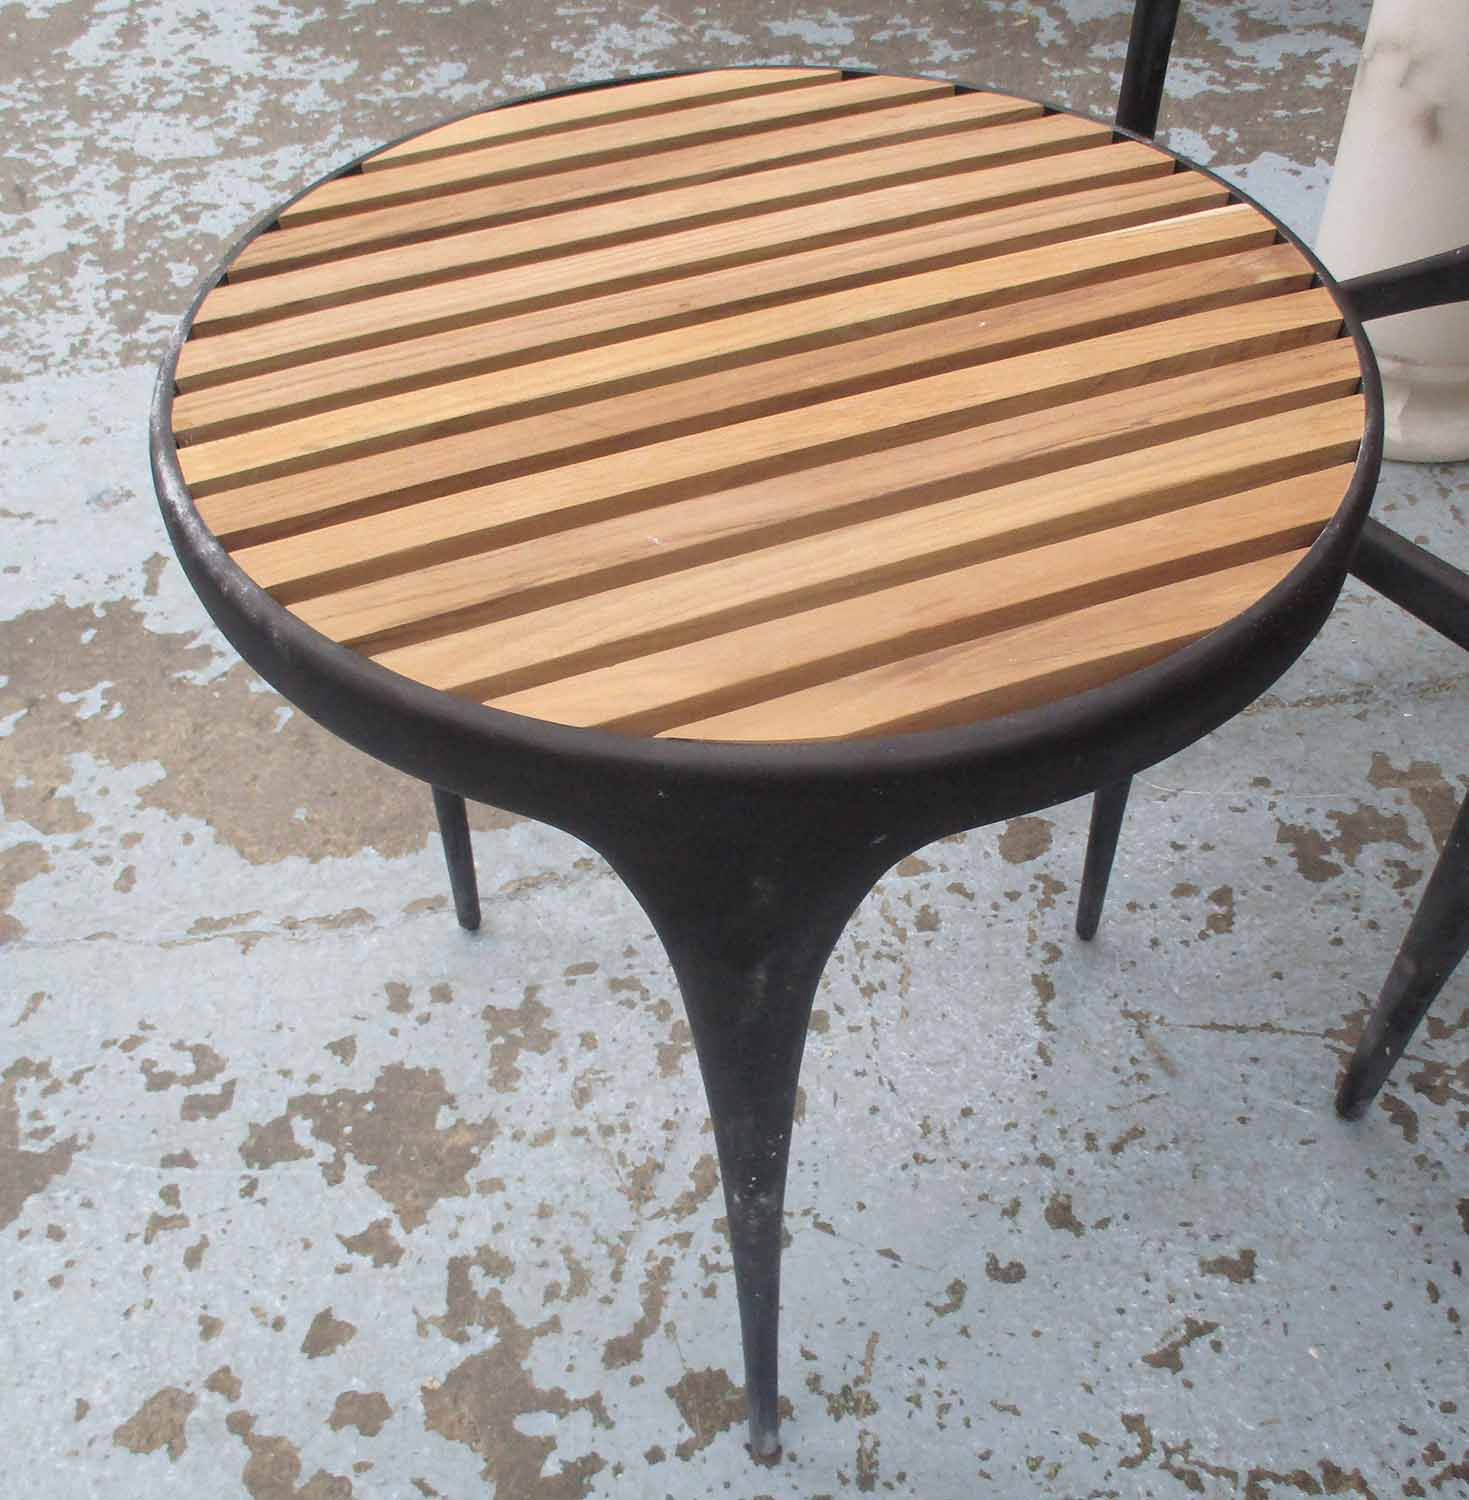 SIDE TABLE, circular slatted top on cast iron frame by